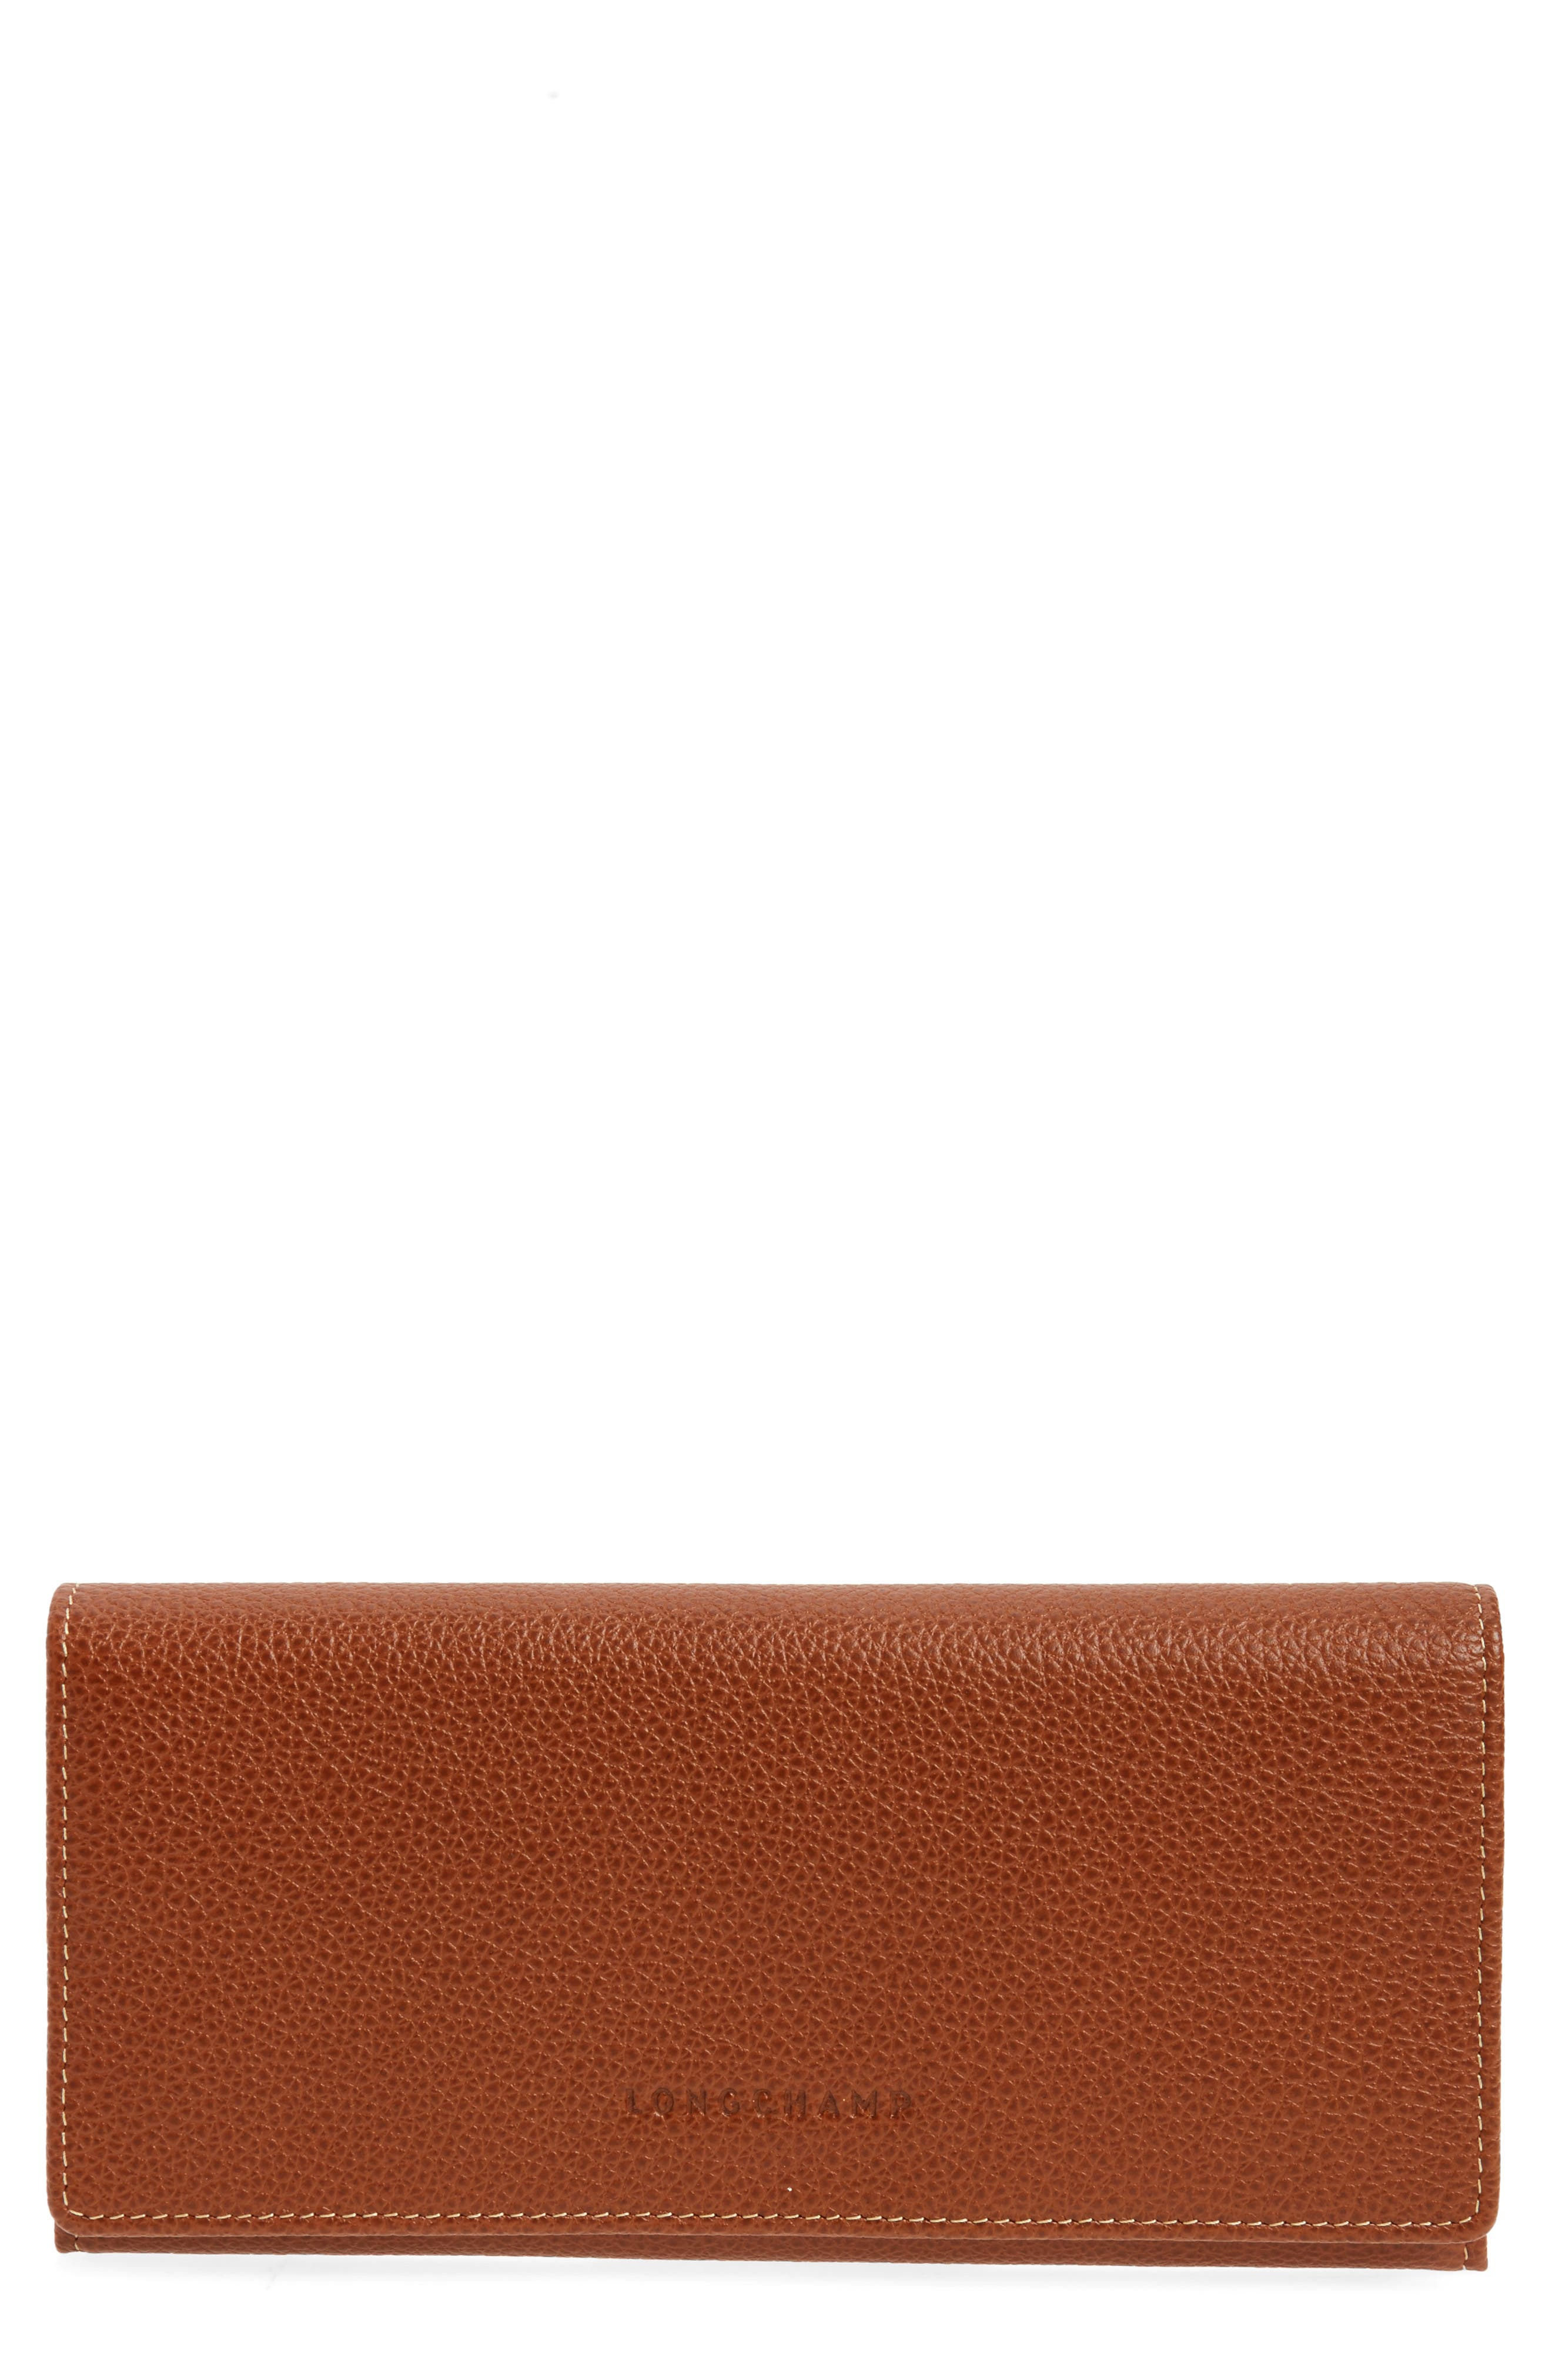 LONGCHAMP 'Veau' Continental Wallet, Main, color, COGNAC